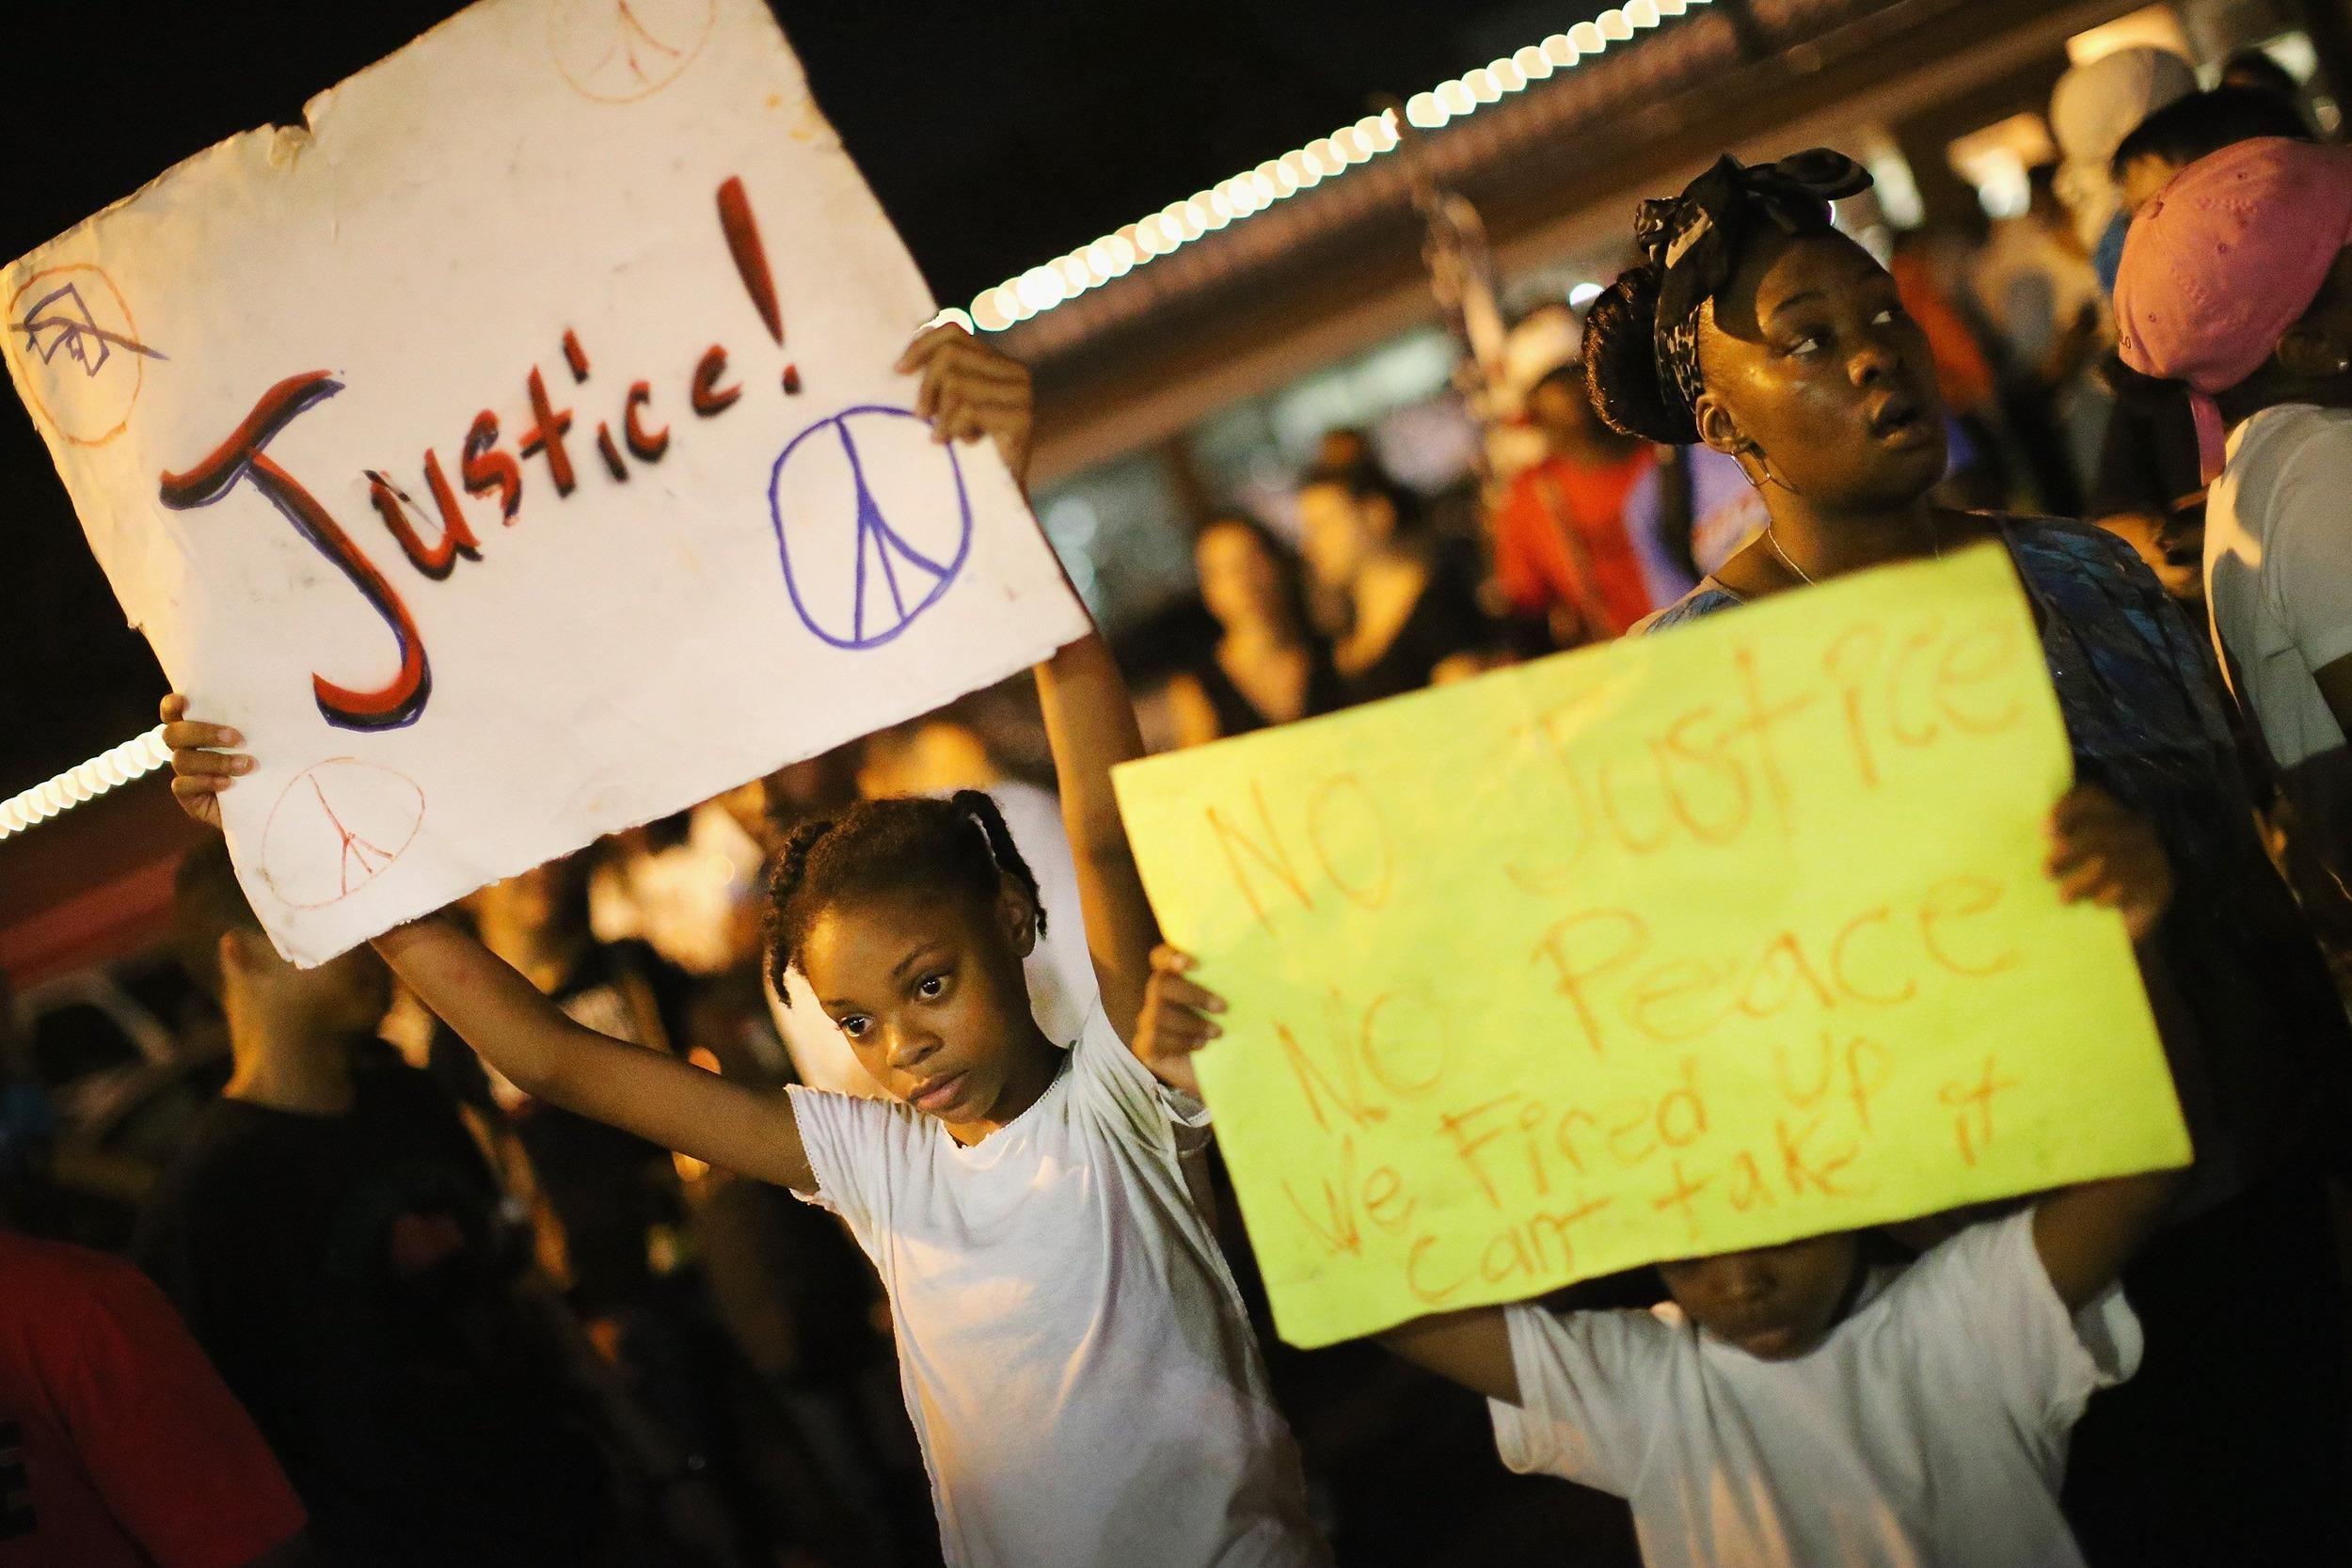 Image: Ferguson Community Continues To Demonstrate Over Police Shooting Death Of Michael Brown